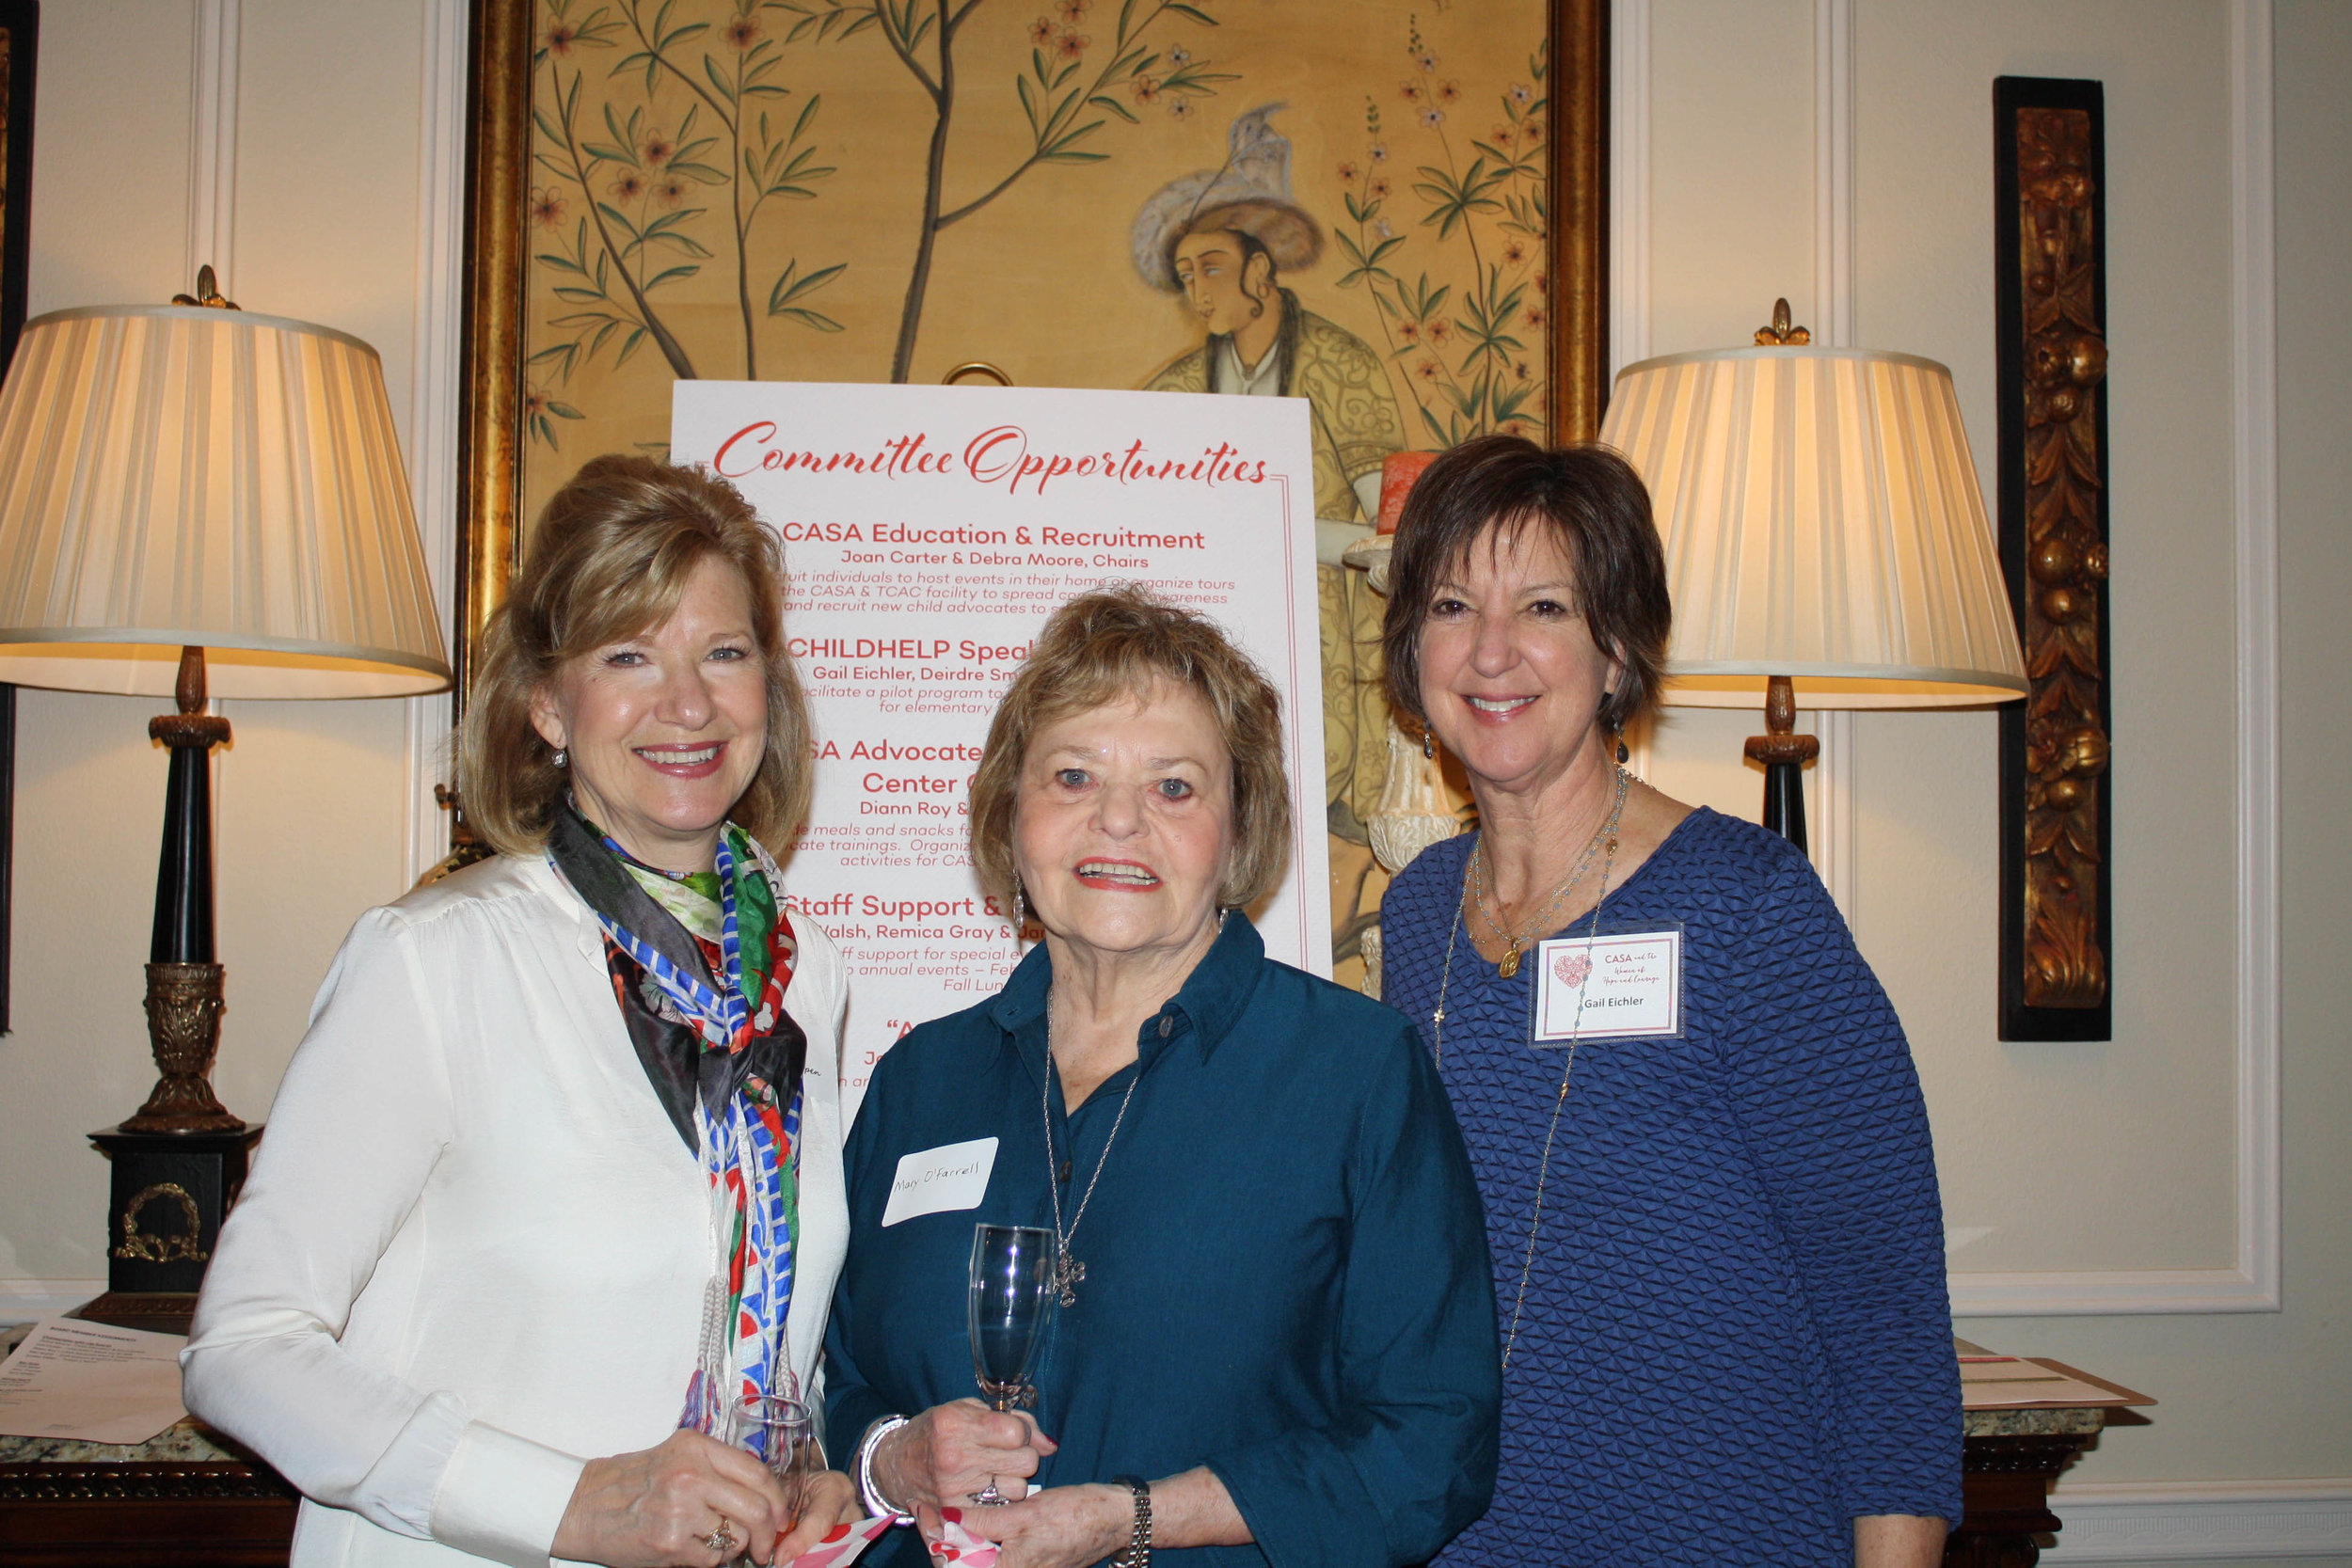 Cathy Van Herpen, Mary O'Farrell and Gail Eichler